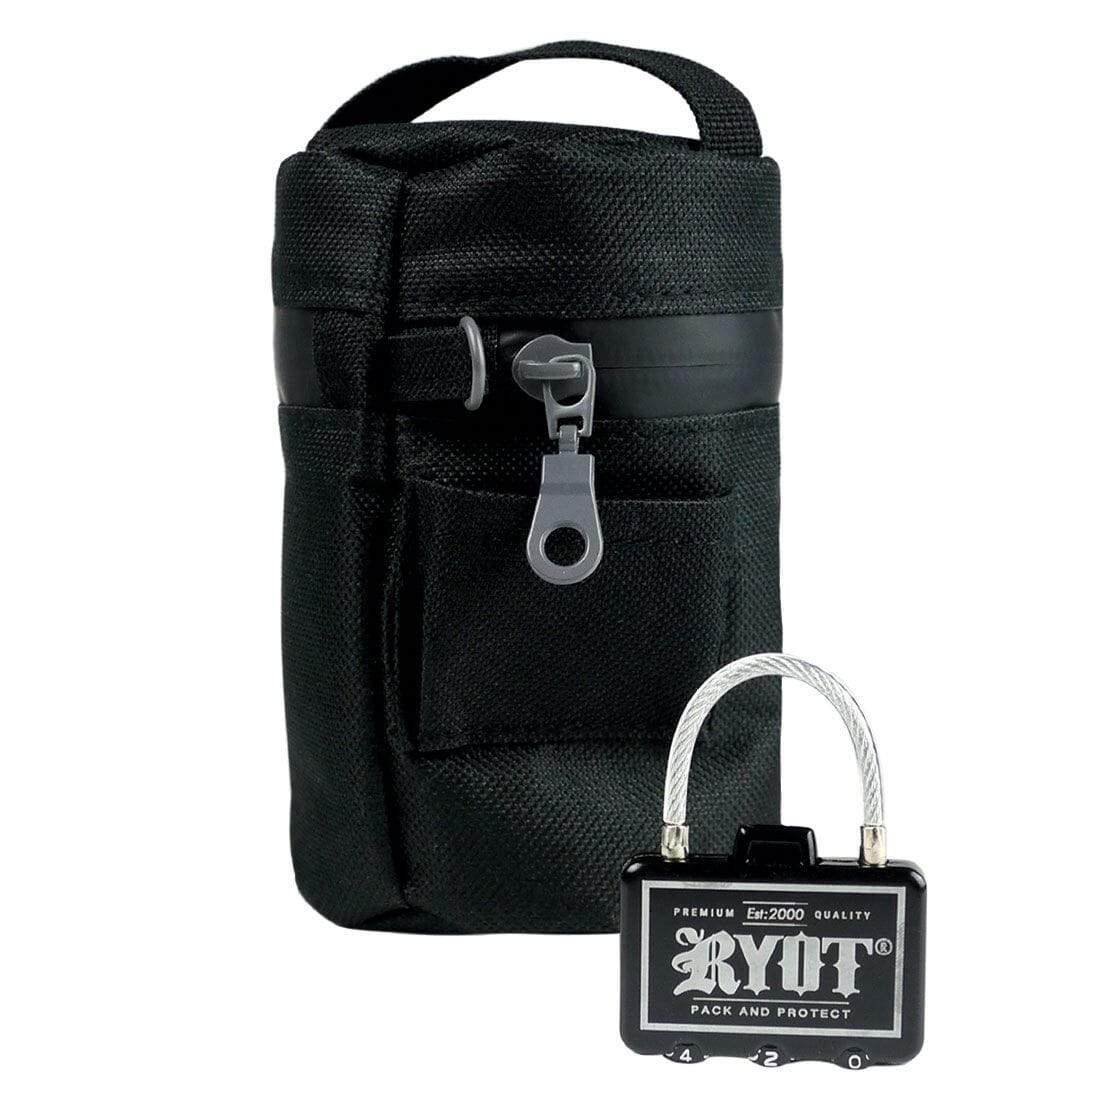 Jar Cooler Bag in Black with Lock - Everything But The Plant